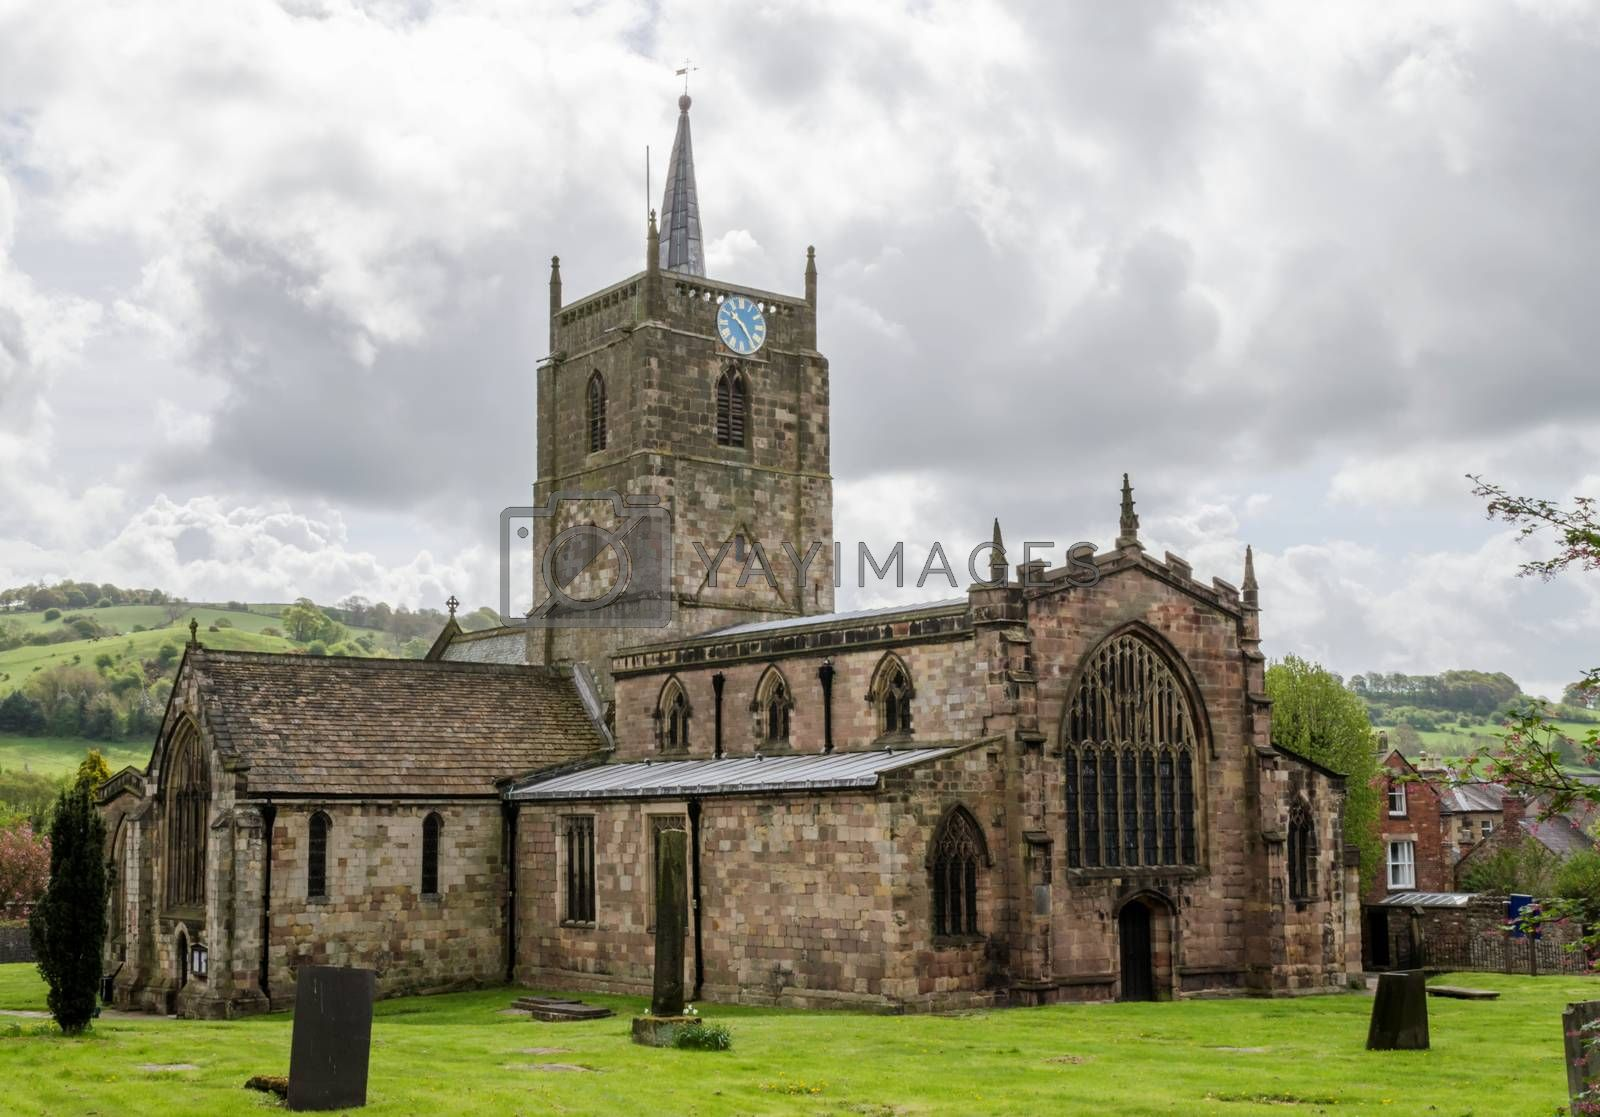 The church in the town of Wirksworth, Derbyshire